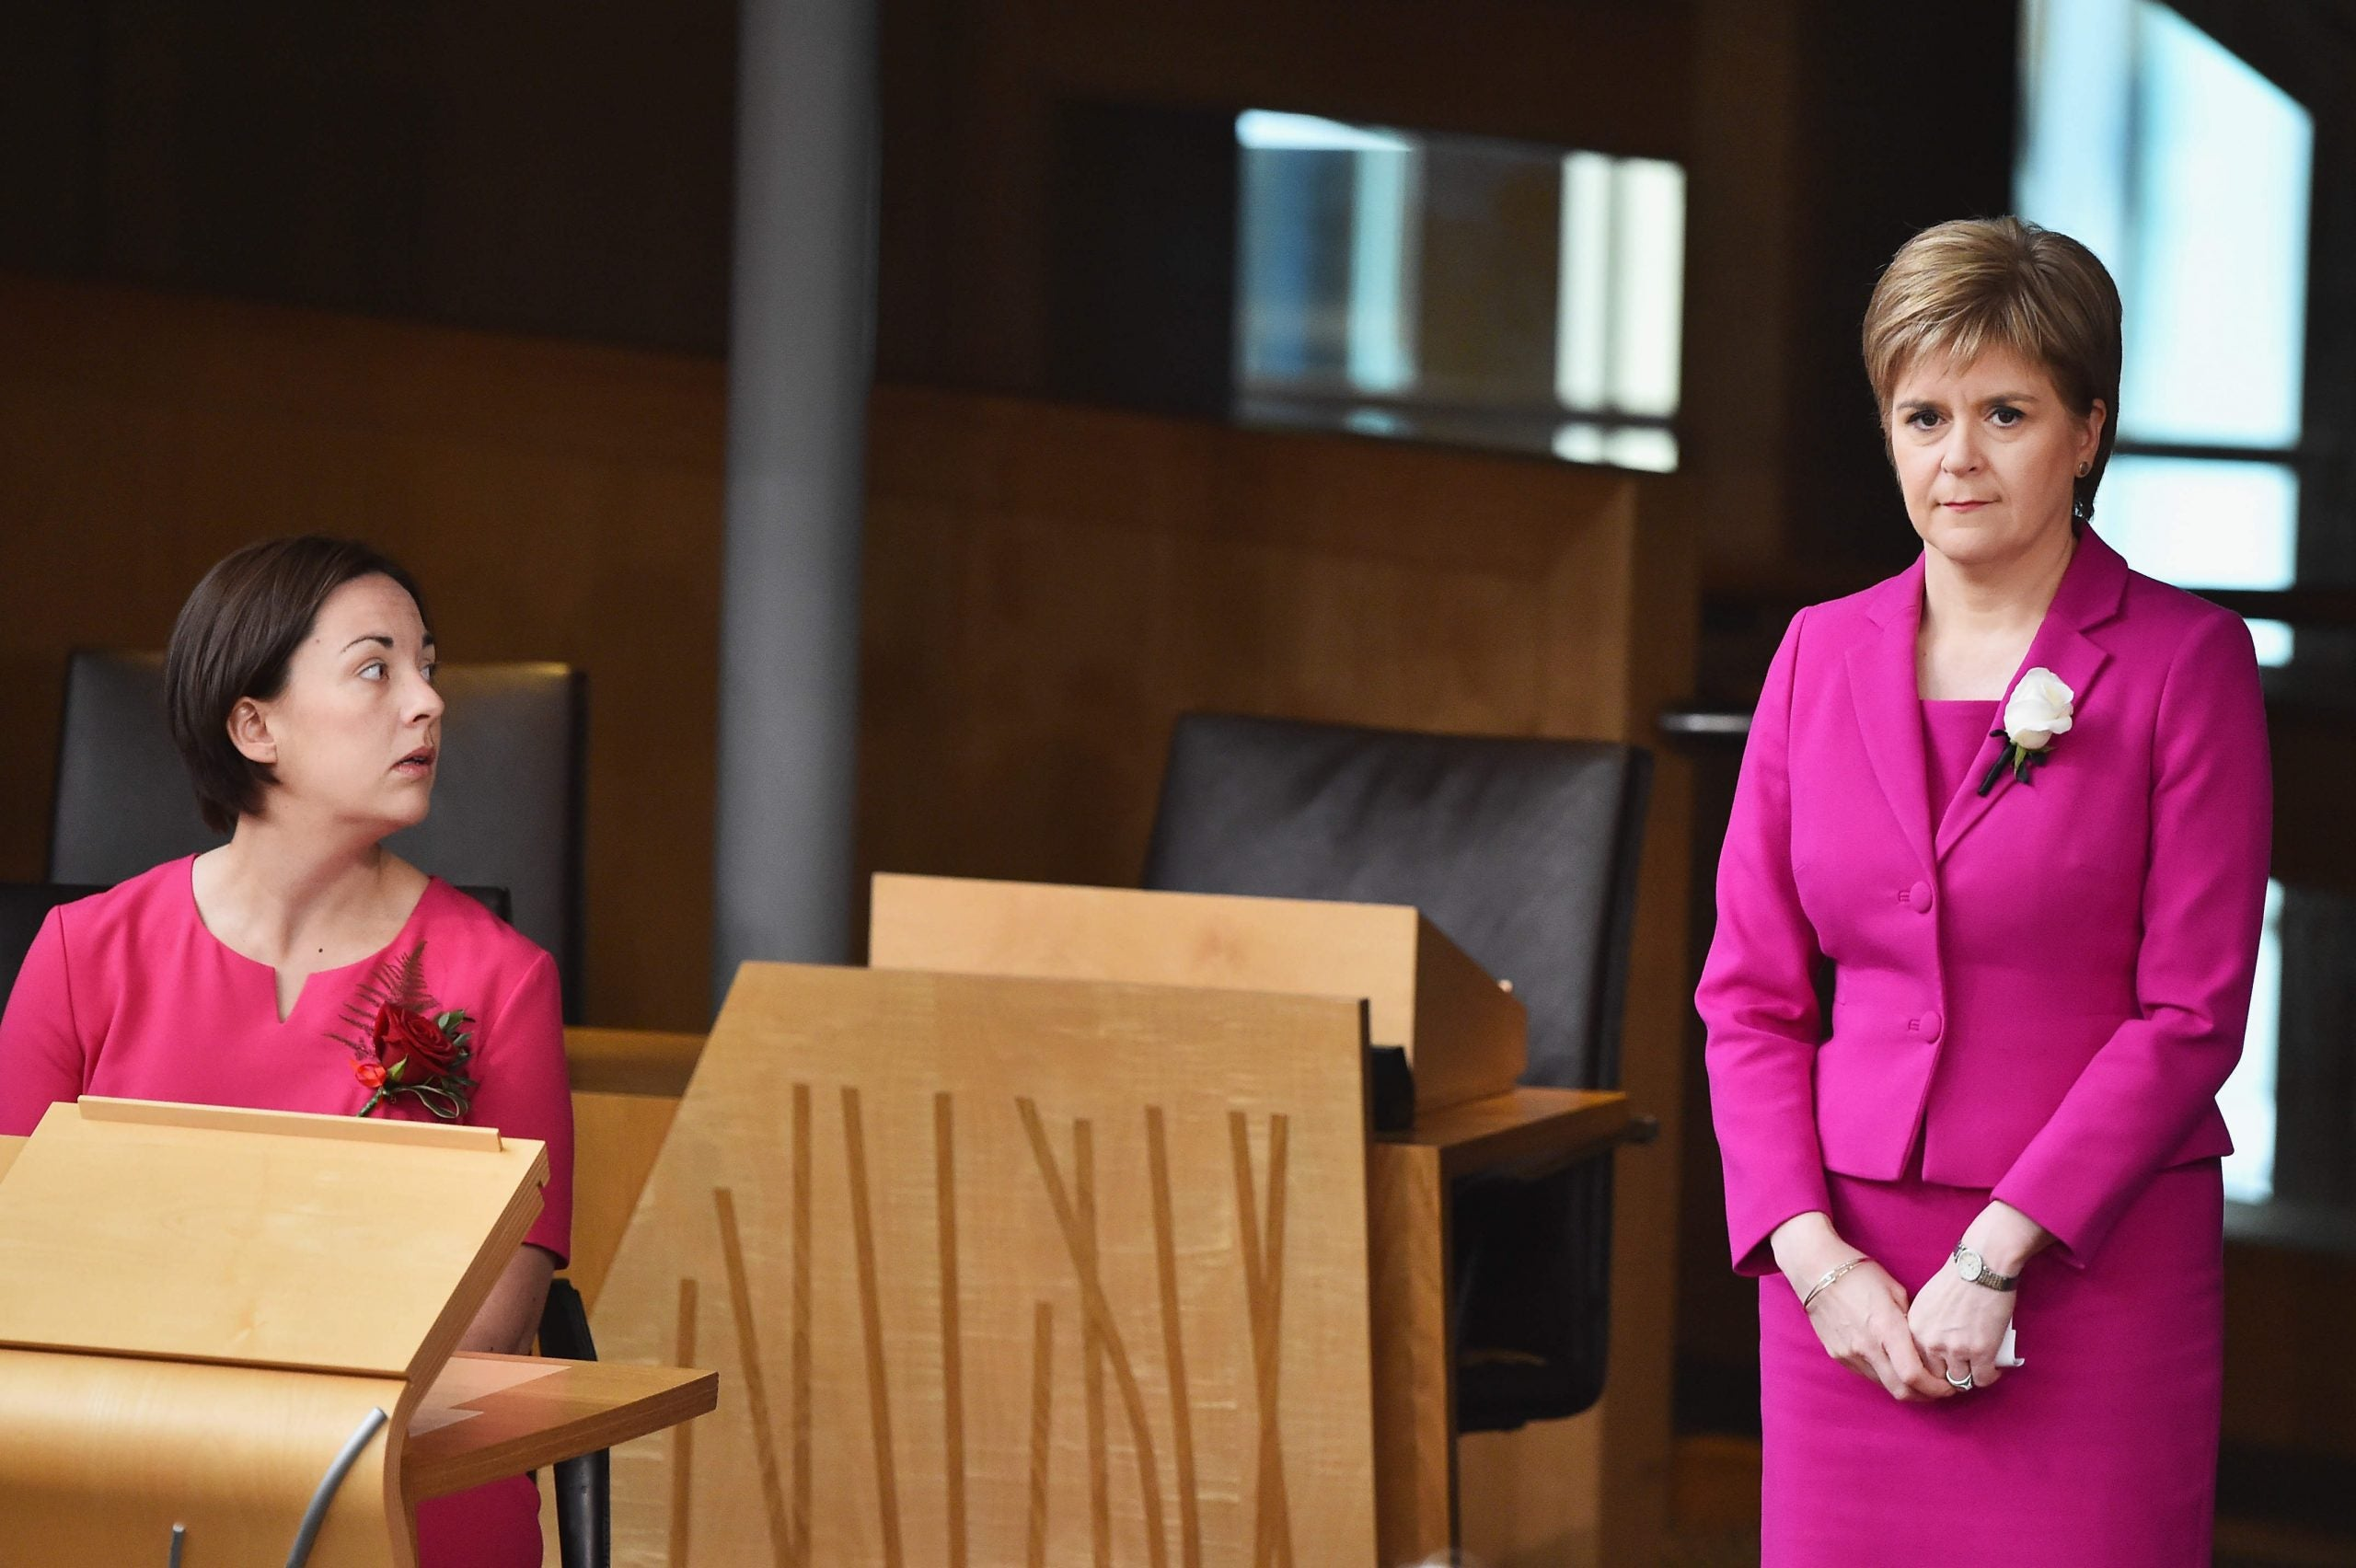 To govern again, Labour must do a deal with the SNP and focus on England